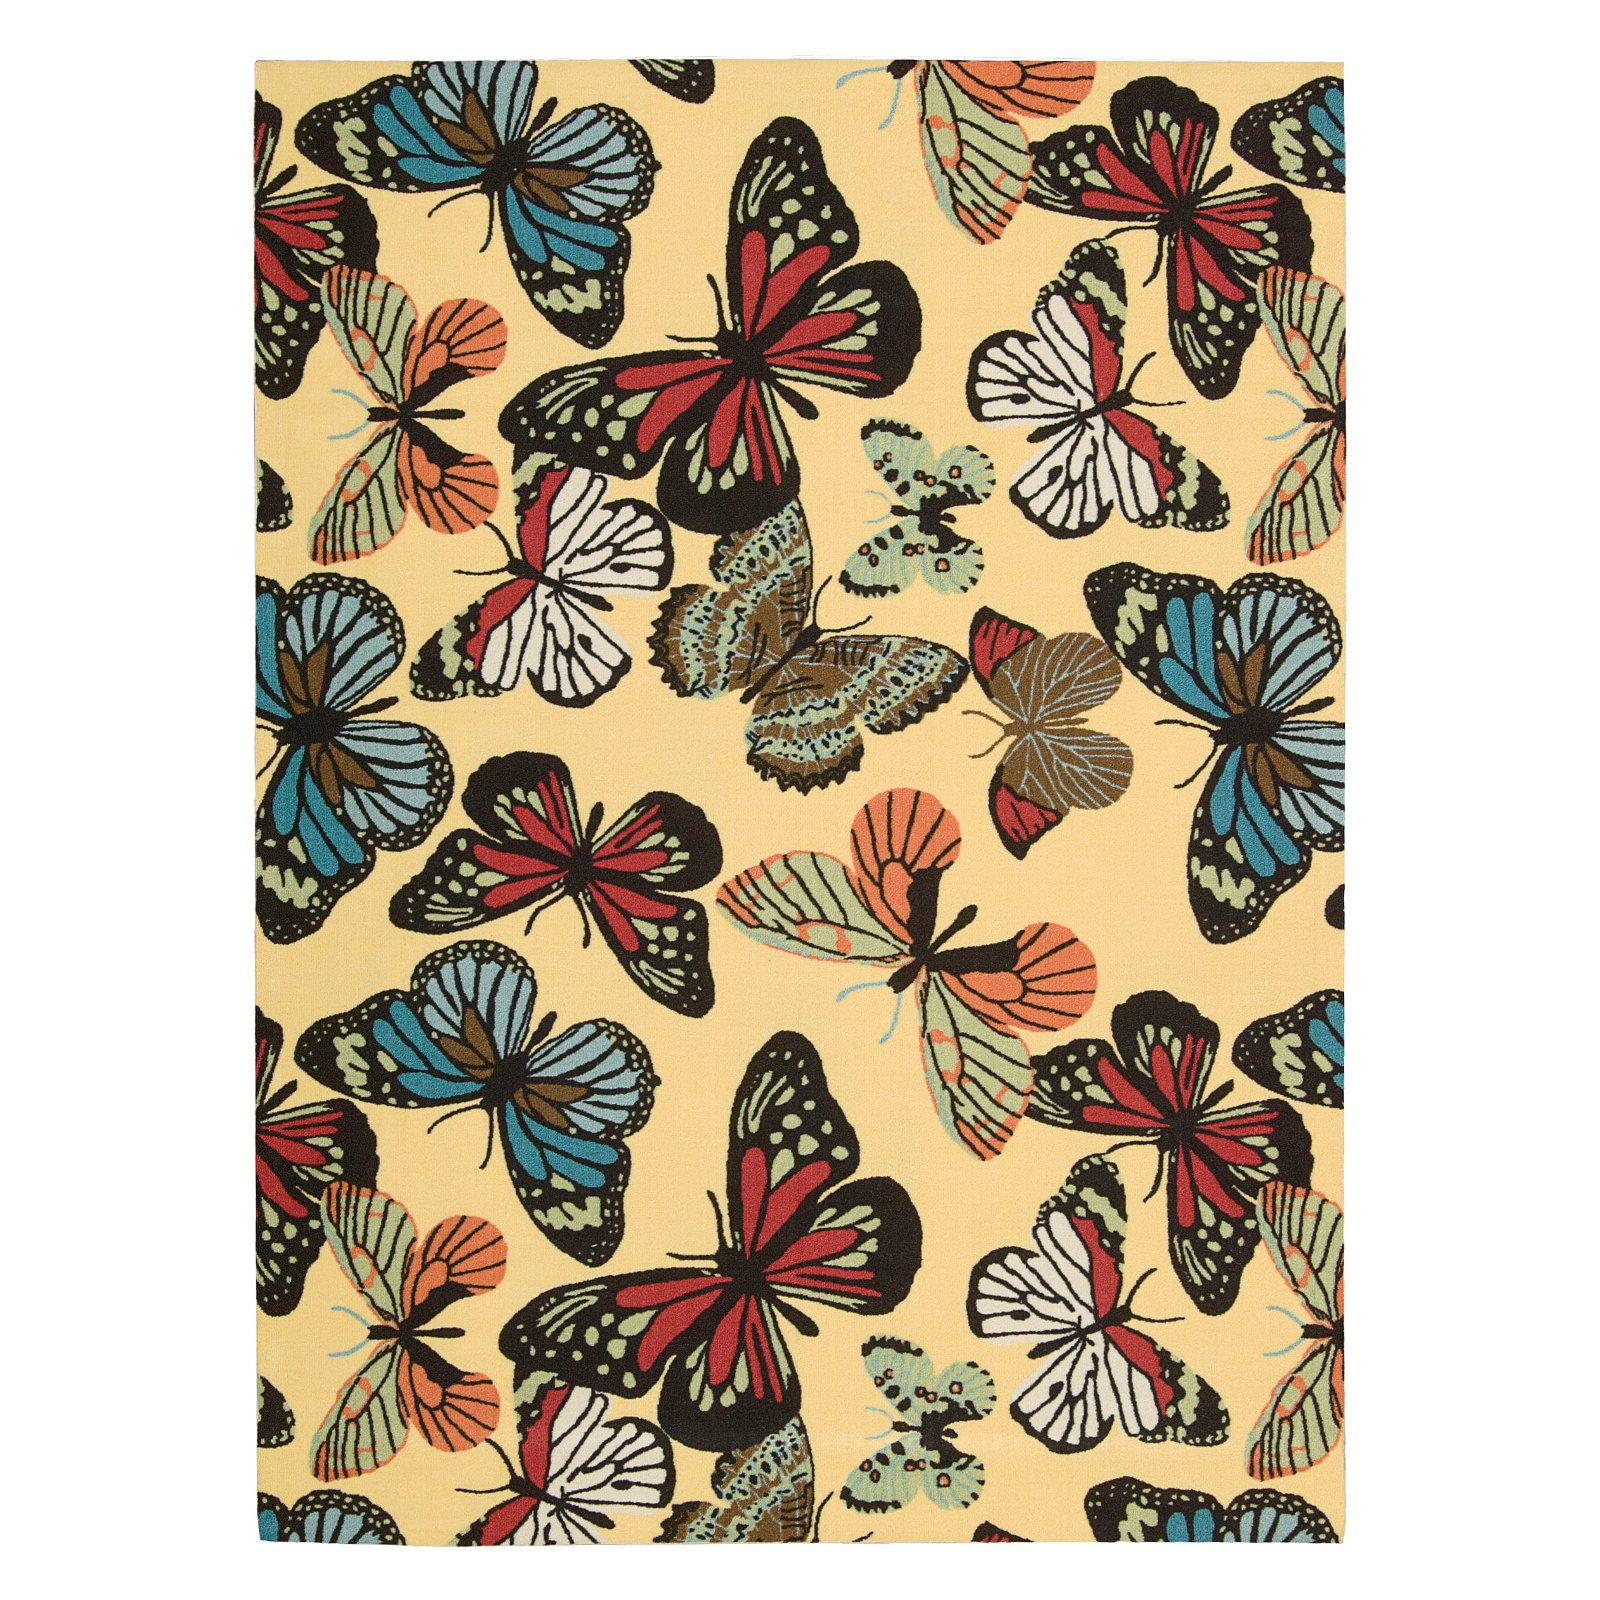 Home and Garden Butterfly Indoor Outdoor Area Rug by Nourison, Yellow by Nourison